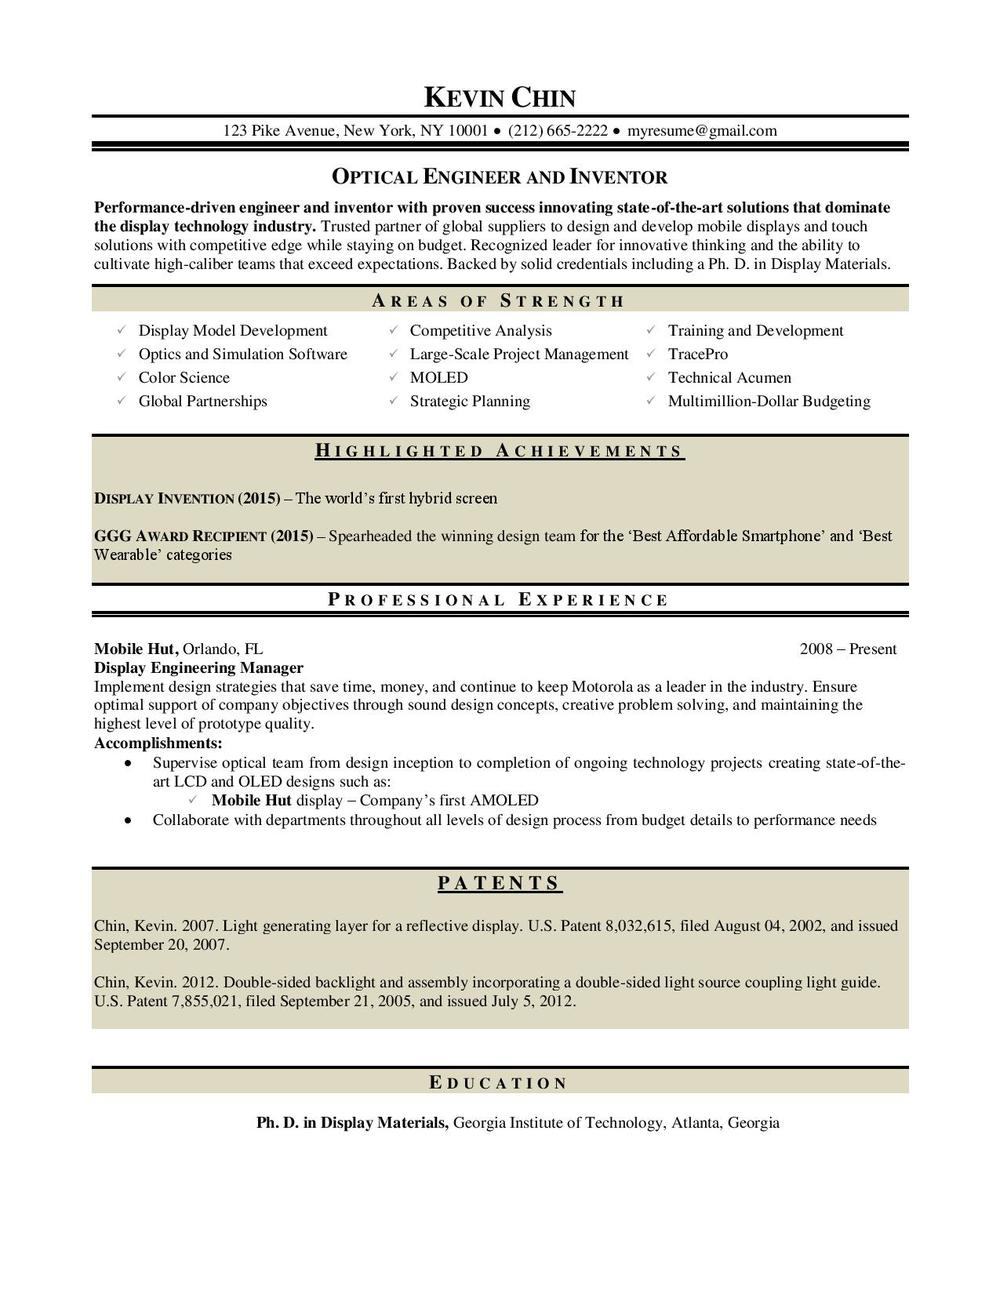 Professional resume writing services quincy ma